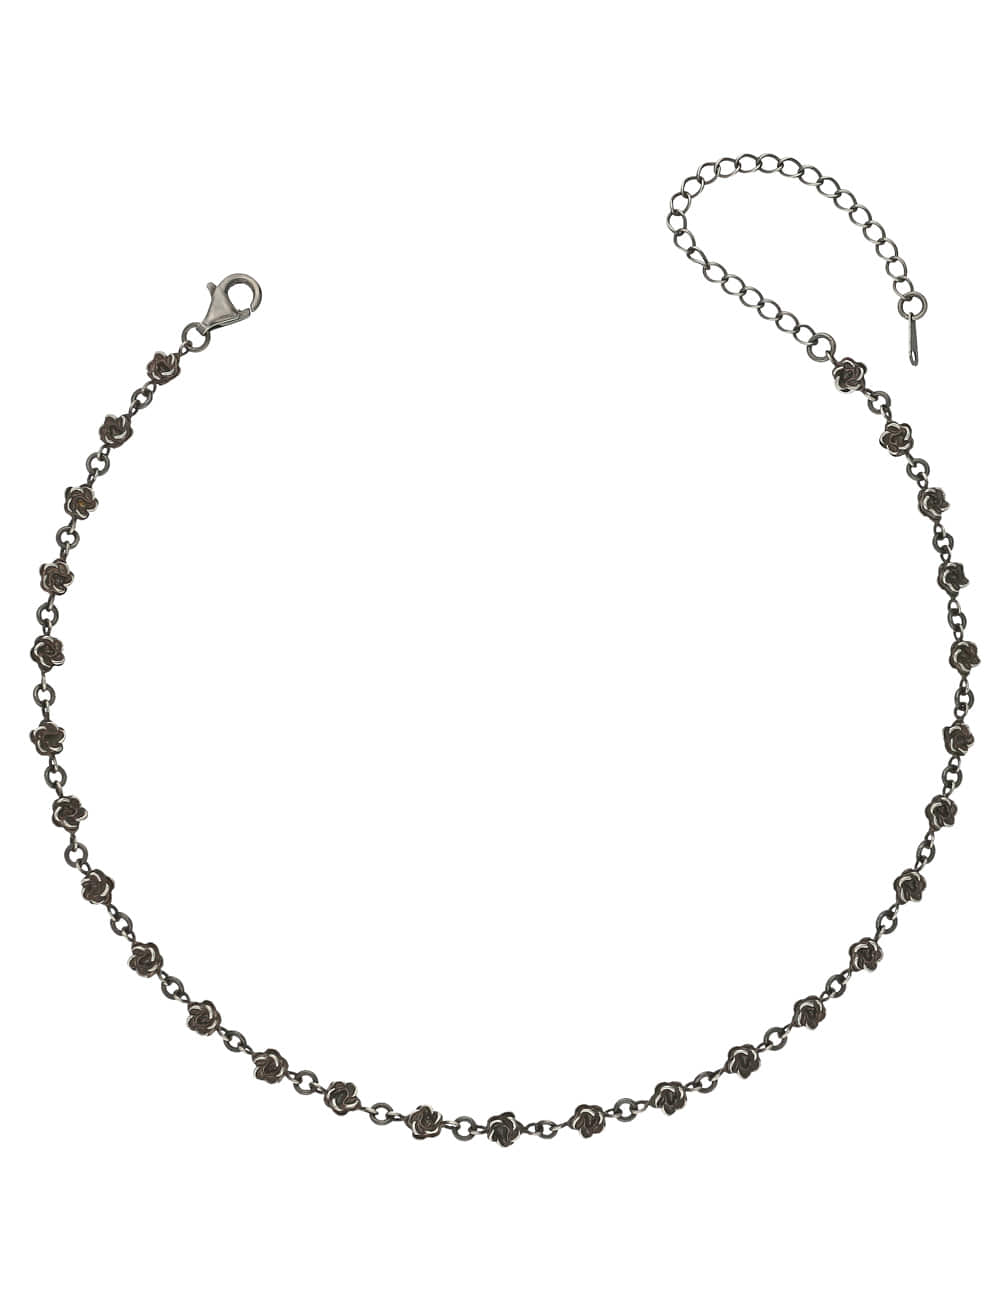 925 Silver Rose and Mugunghwa Antique Choker Necklace _ 빈티지 장미 초커 라비쉬에